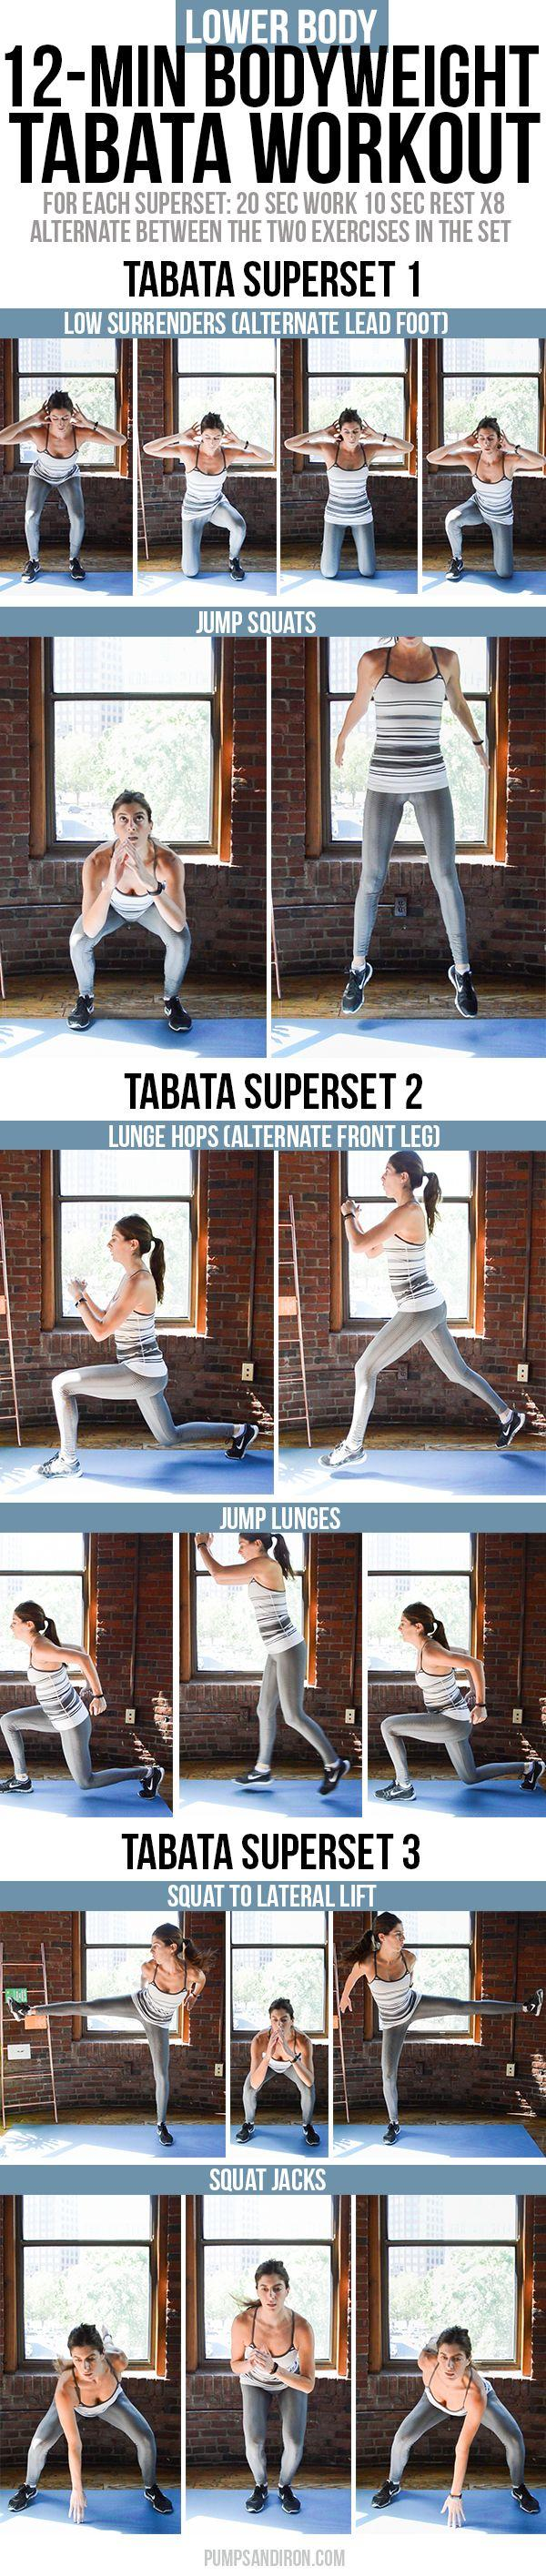 Wedding - 12-Minute Bodyweight Tabata Workout Series: Lower Body (Legs & Glutes)